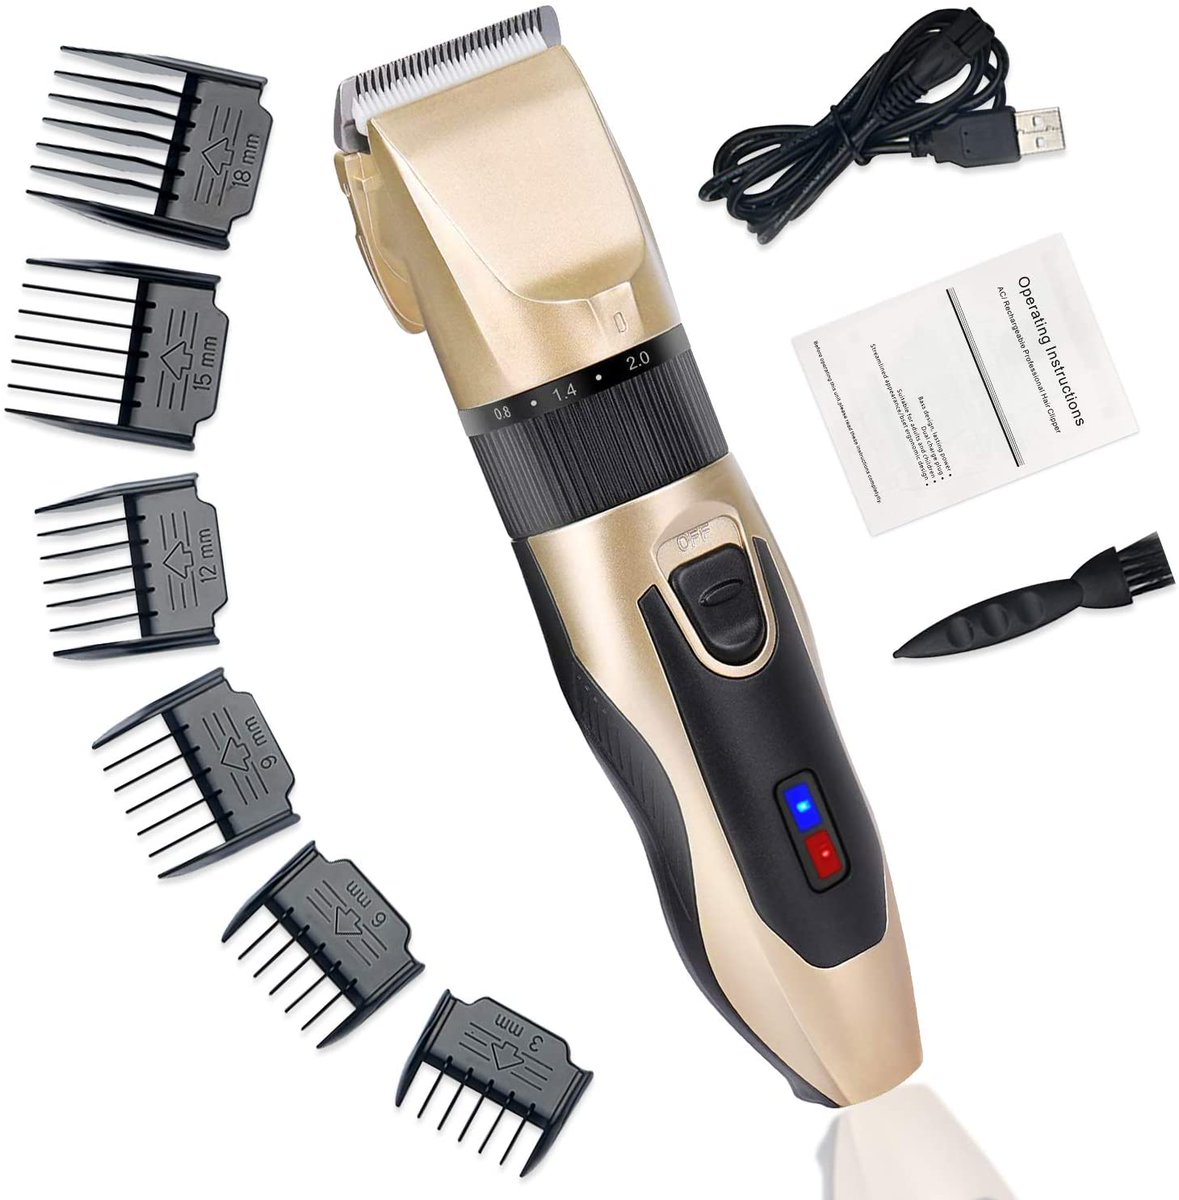 Cordless Hair Trimming Kit for $10.80  Use Promo Code 7082JJO8     #deals #Amazon #Steals #bargains #deal #dealoftheday #discounts  #sales #grooming #barber #NaughtiasDeals #salon #hair